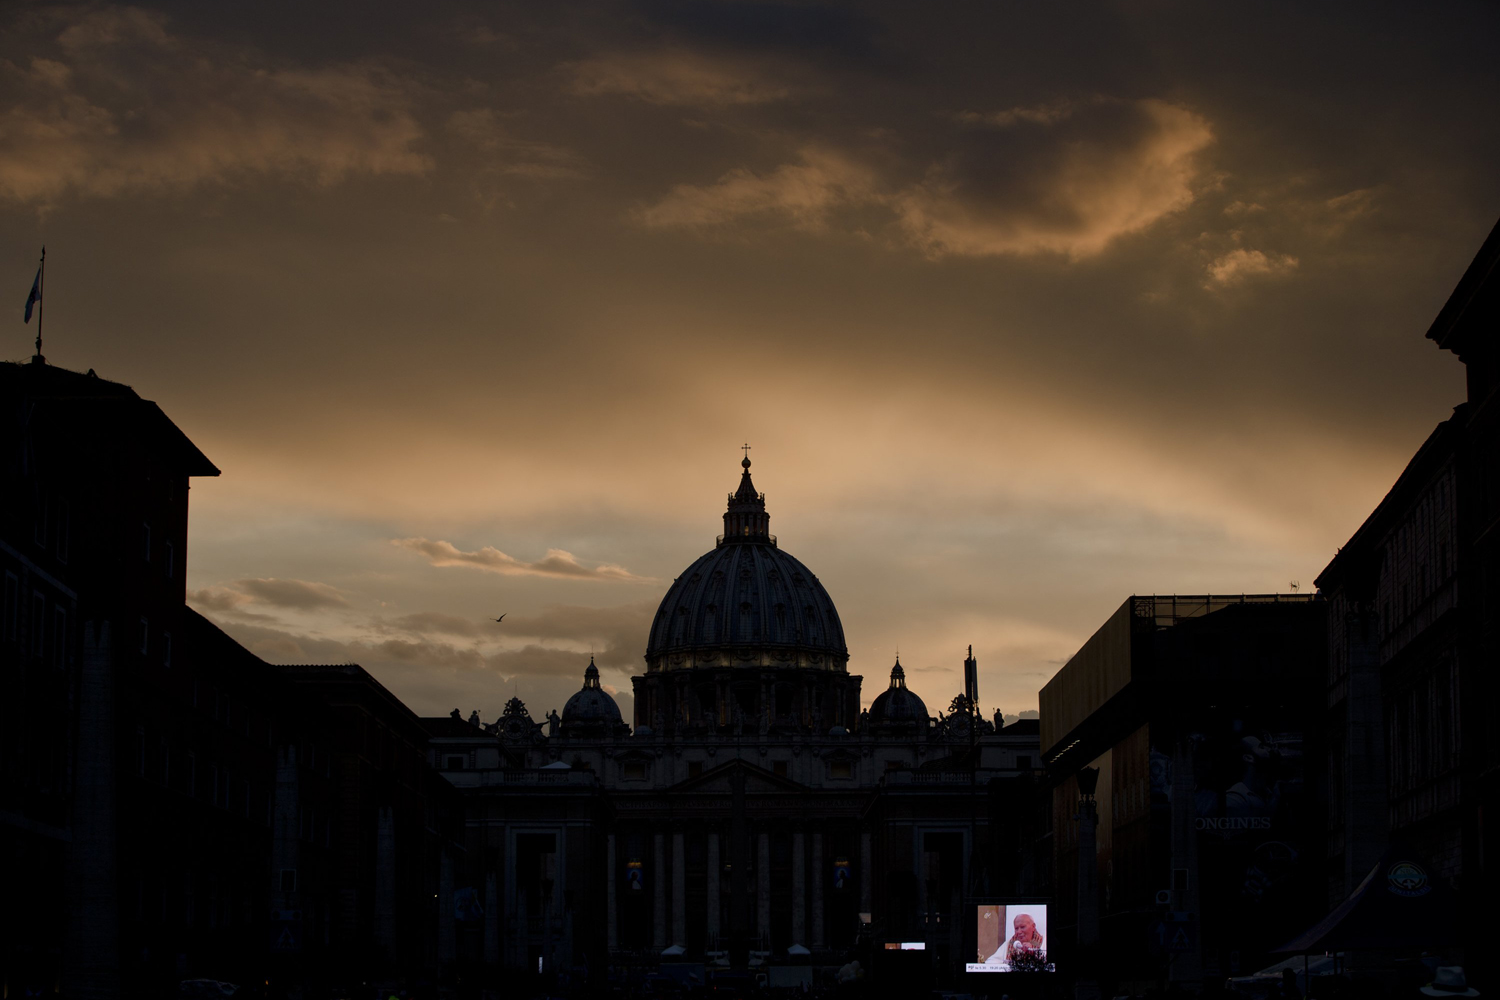 Apr. 26, 2014. A large screen for public display shows Pope John Paul II after sunset outside St. Peter's Square at the Vatican.